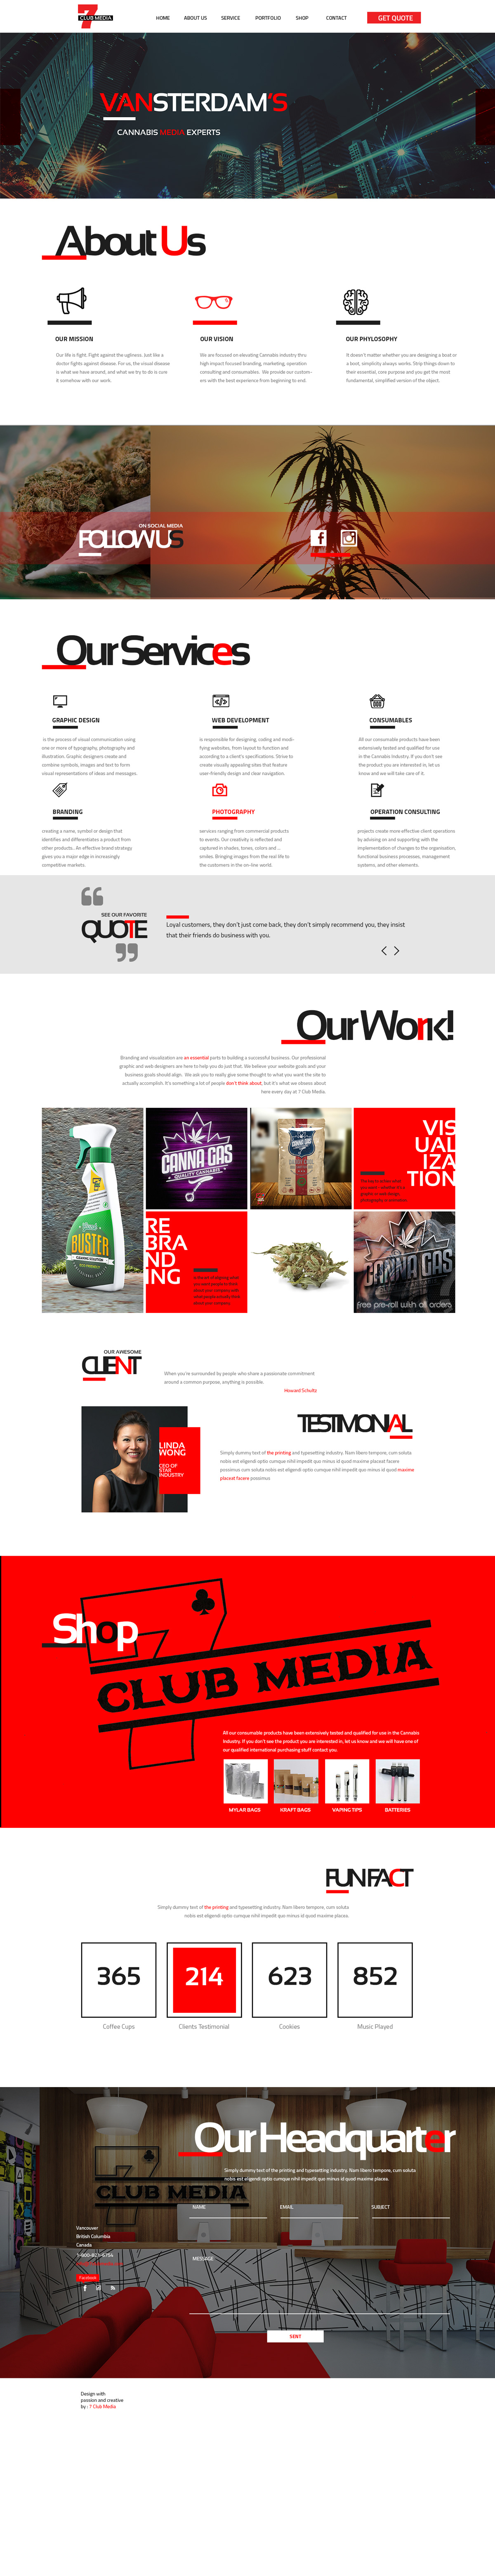 7Clubmedia-NEW-AGENCY-LOOK